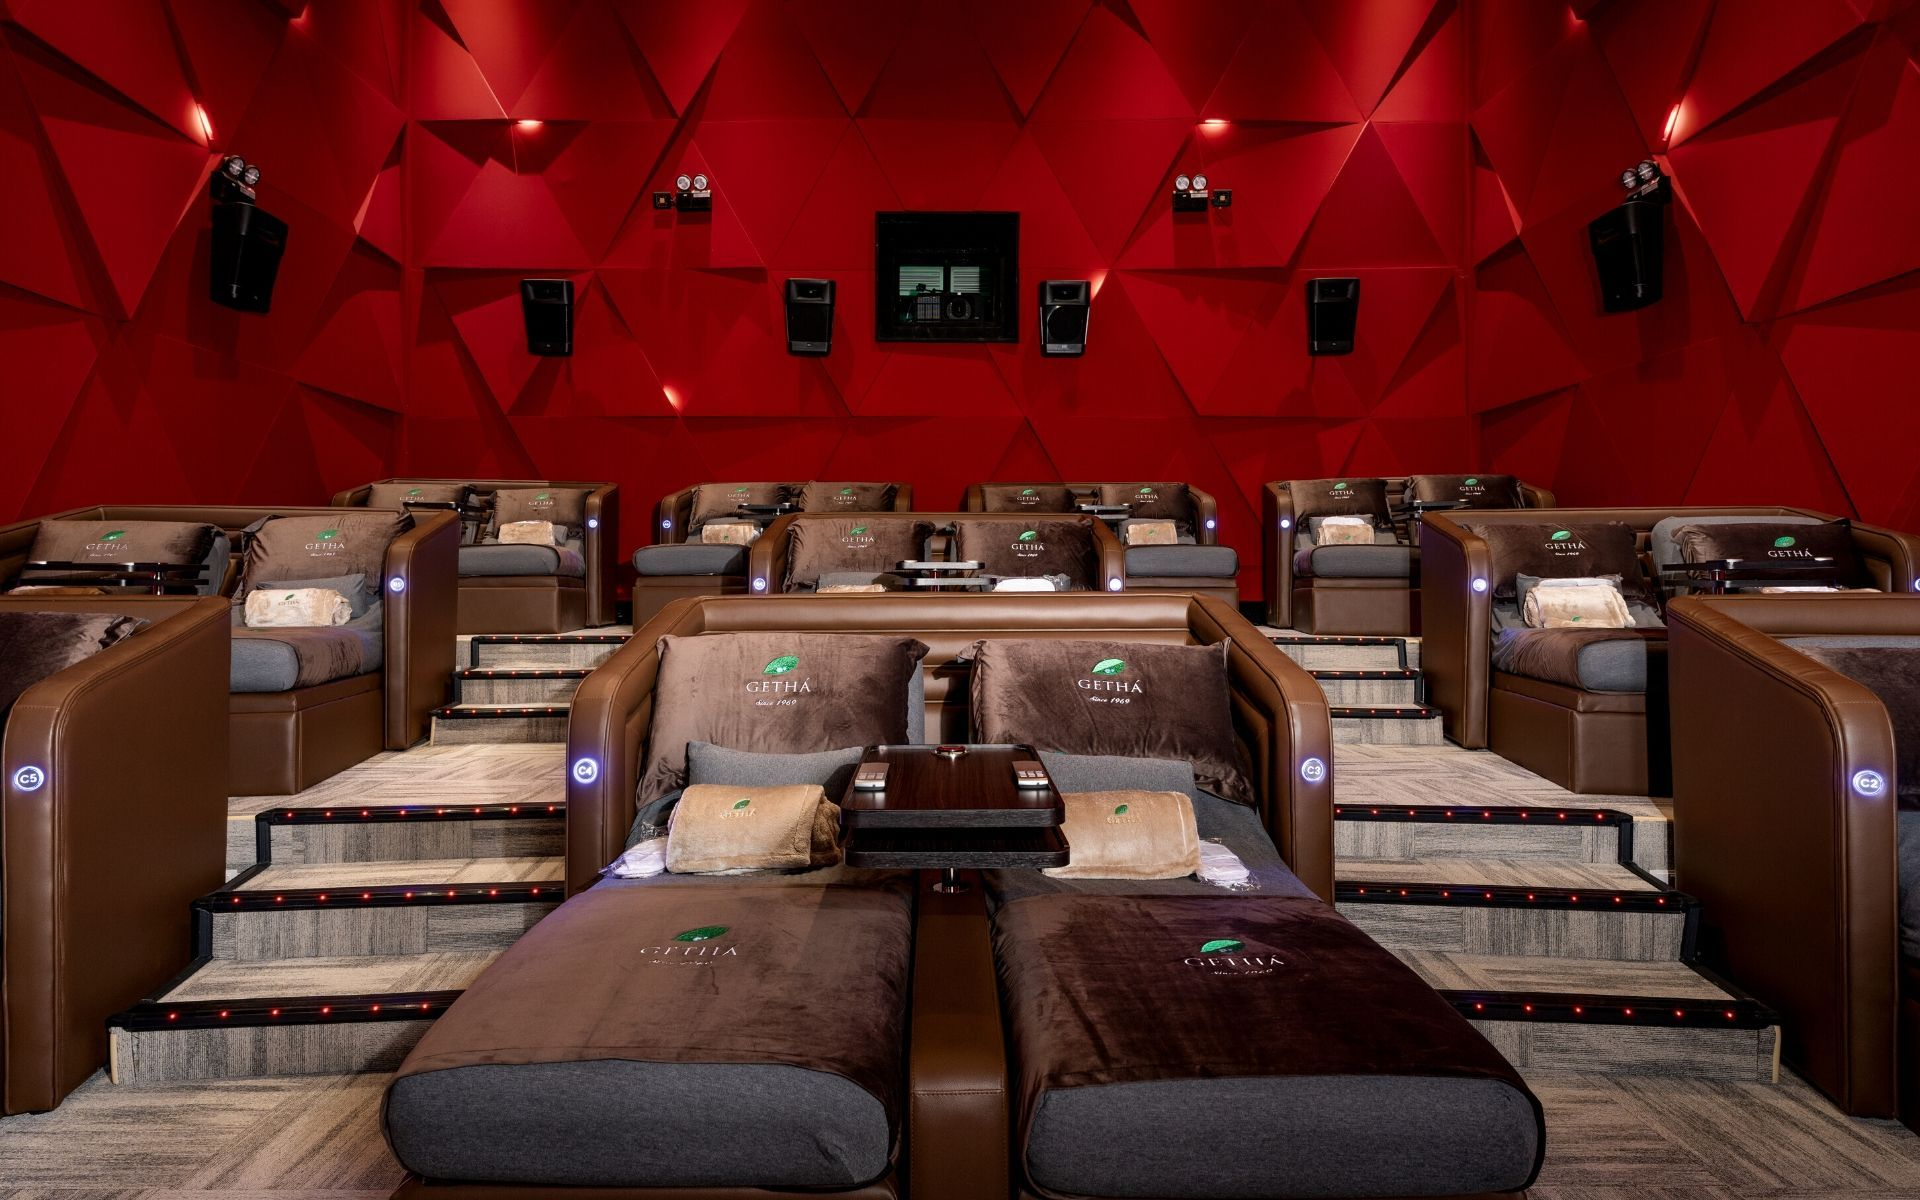 Catch A Movie At Aurum Theatre, Malaysia's Most Luxurious Cinema ...